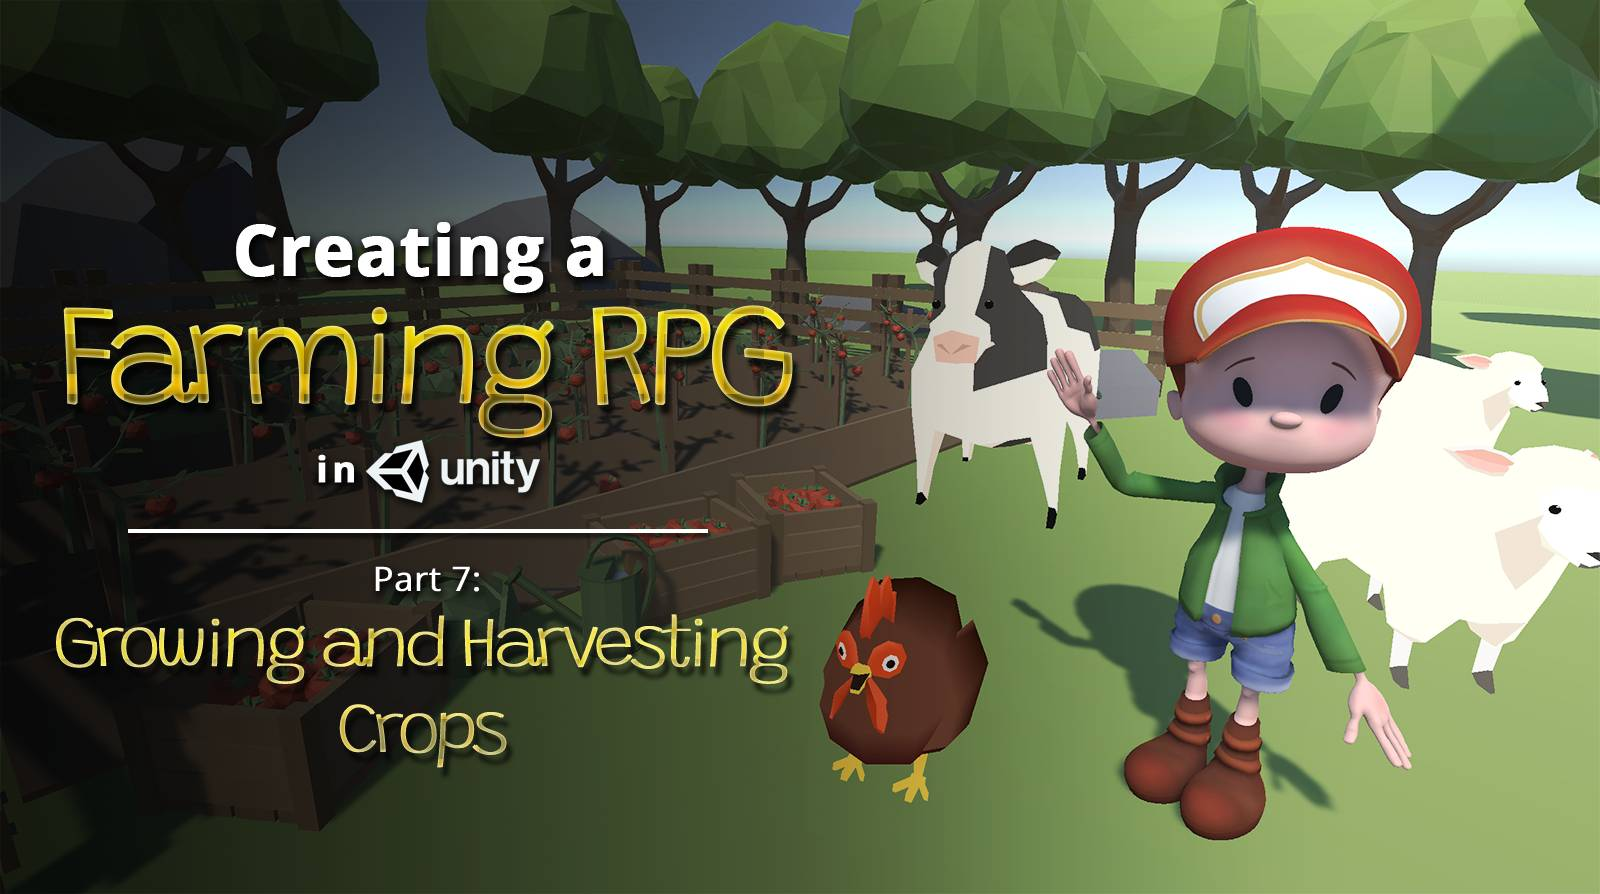 Creating a Farming RPG (like Harvest Moon) in Unity — Part 7: Growing and Harvesting Crops